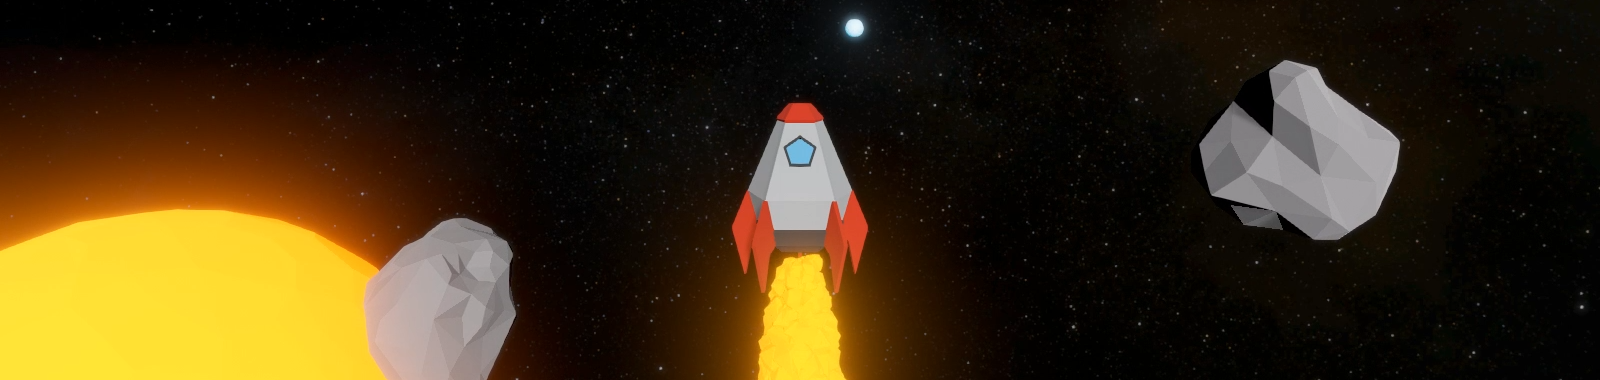 Build a Rocketship Game in Unity